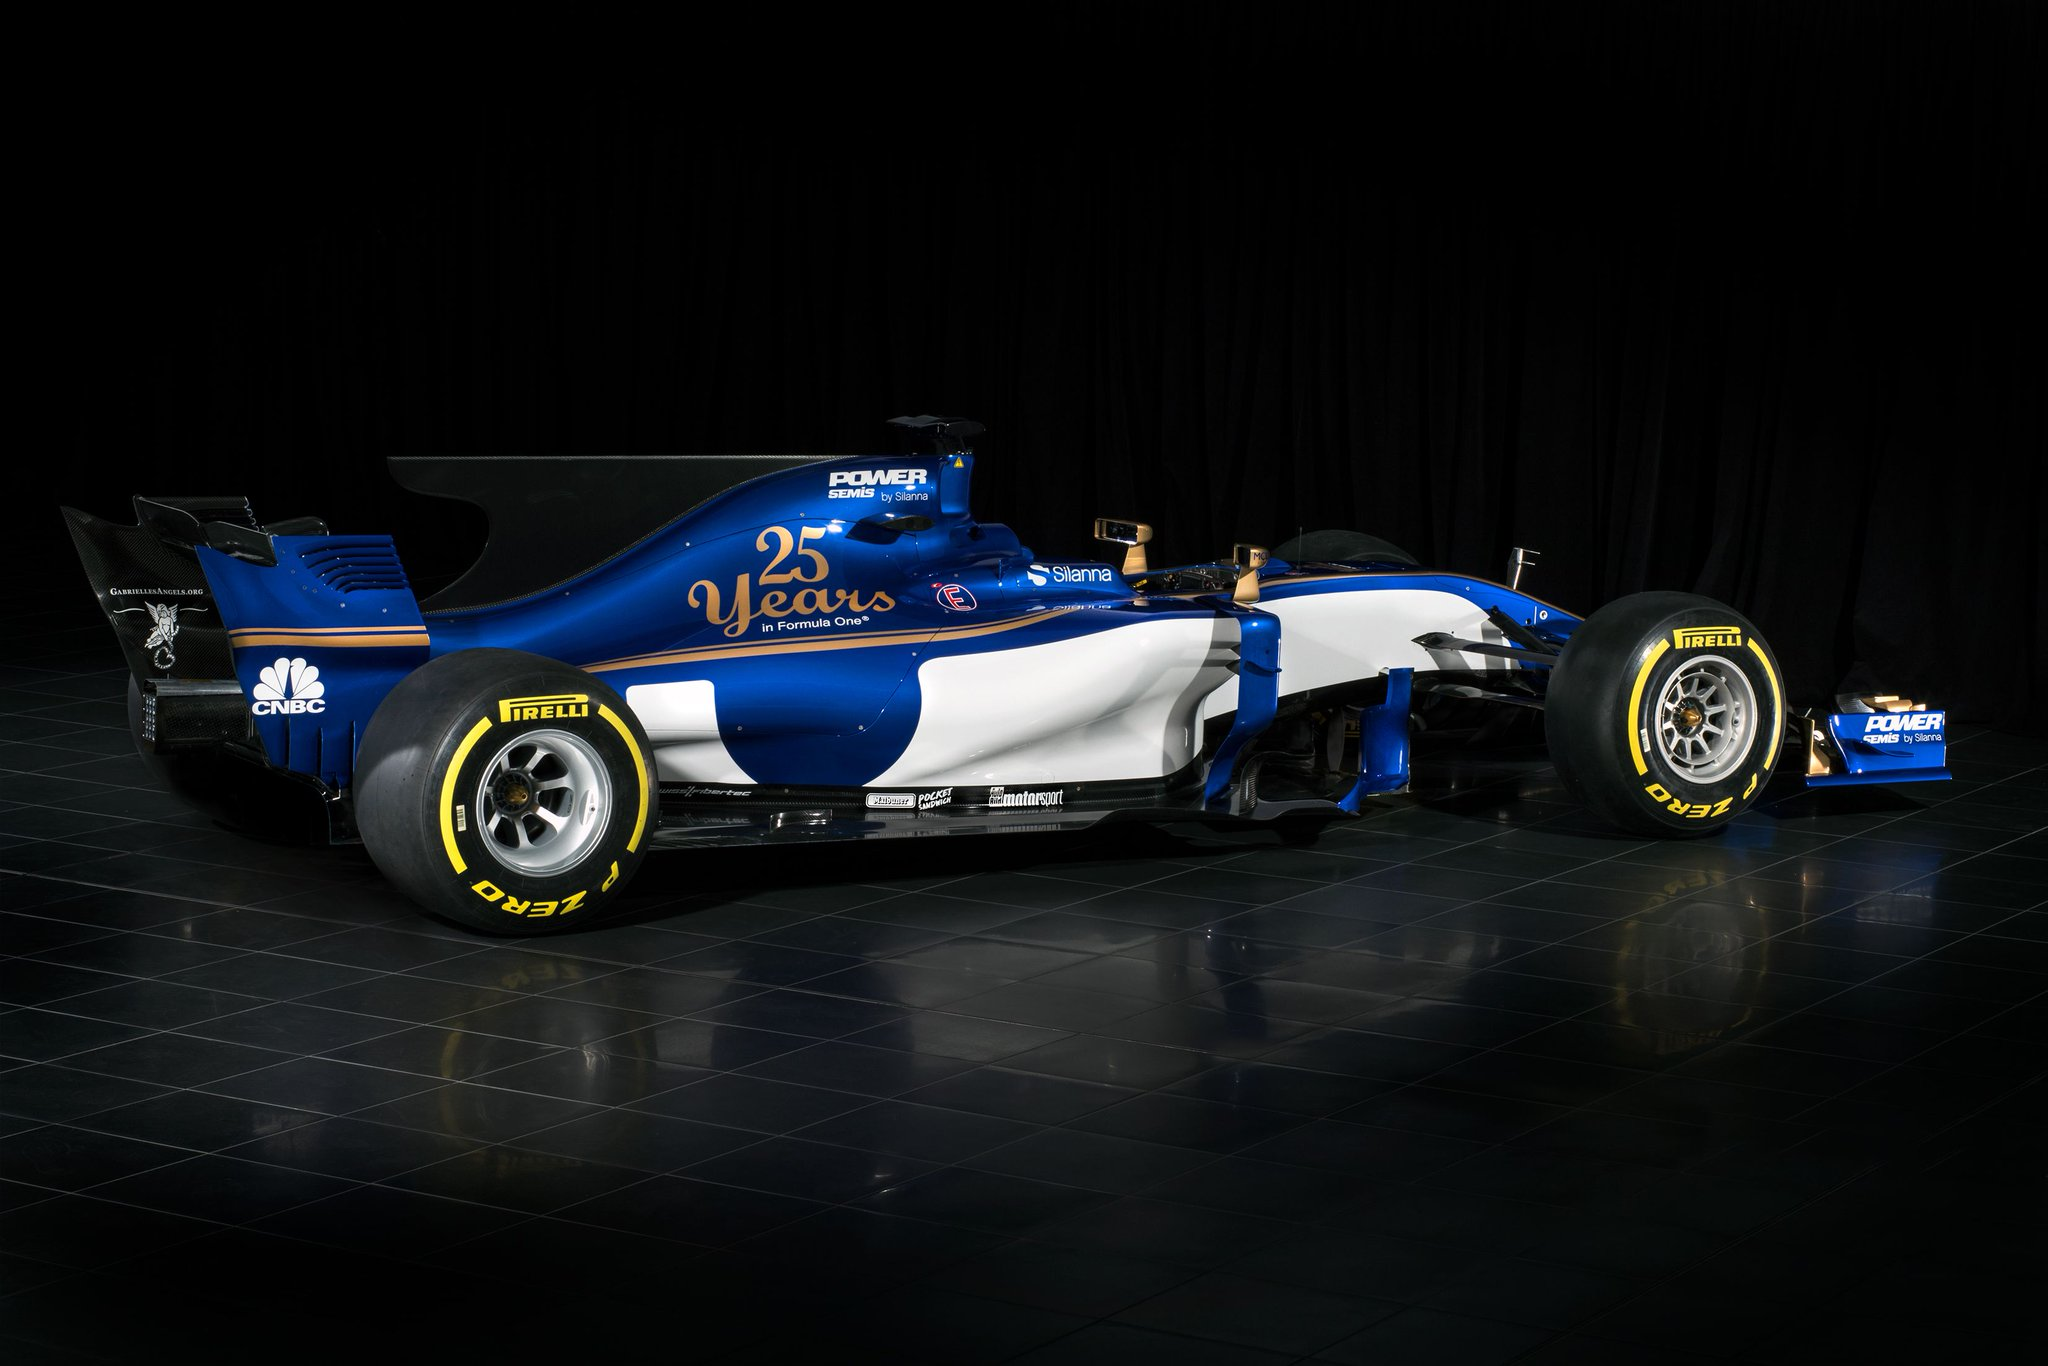 Sauber's Zander: 'With change comes opportunity'